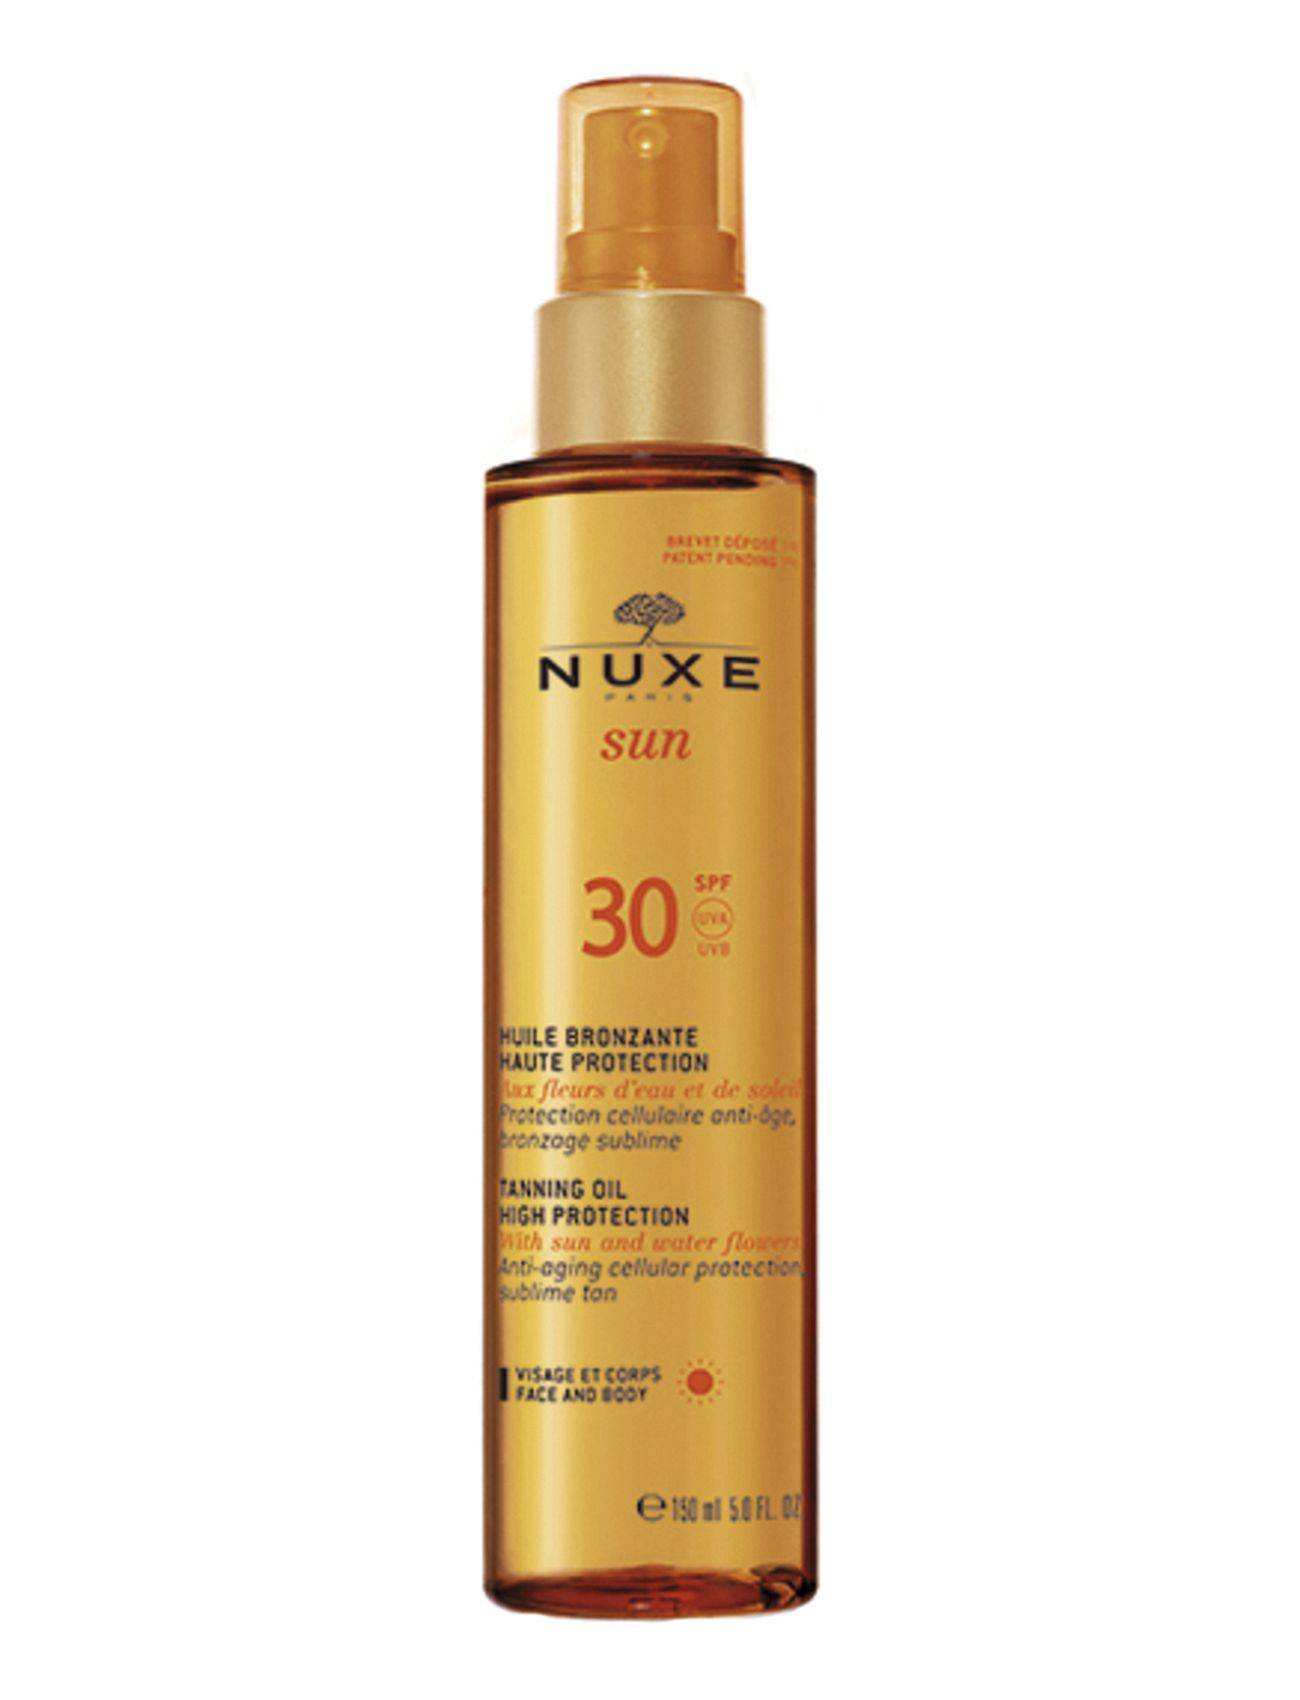 NUXE Tanning Oil Face & Body Spf30